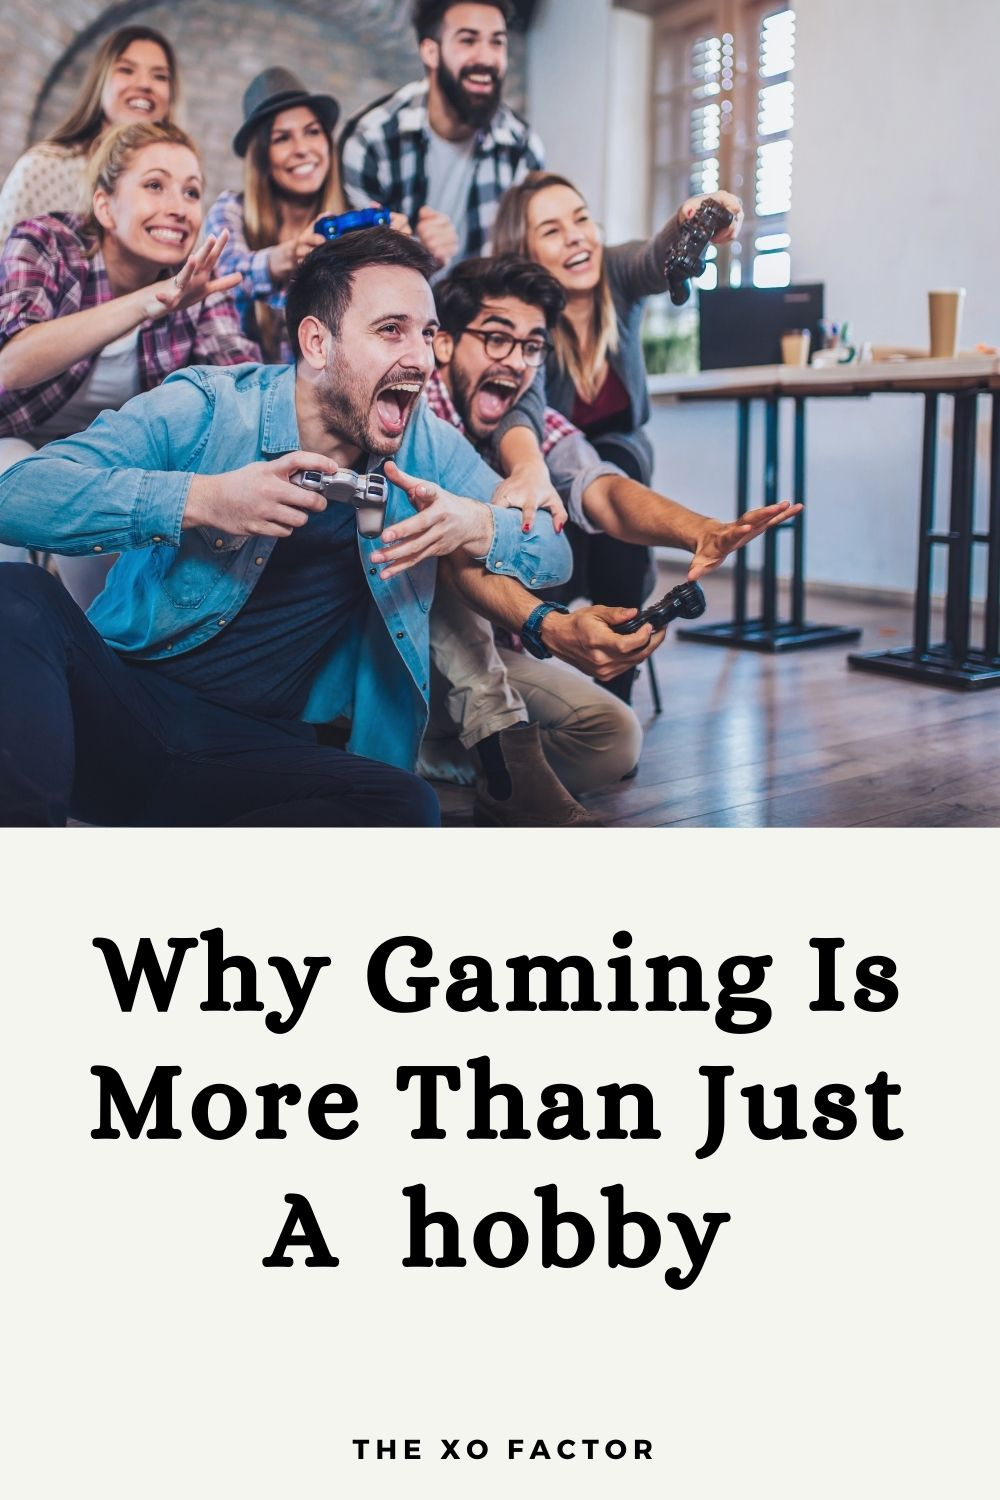 Why gaming is more than just a hobby